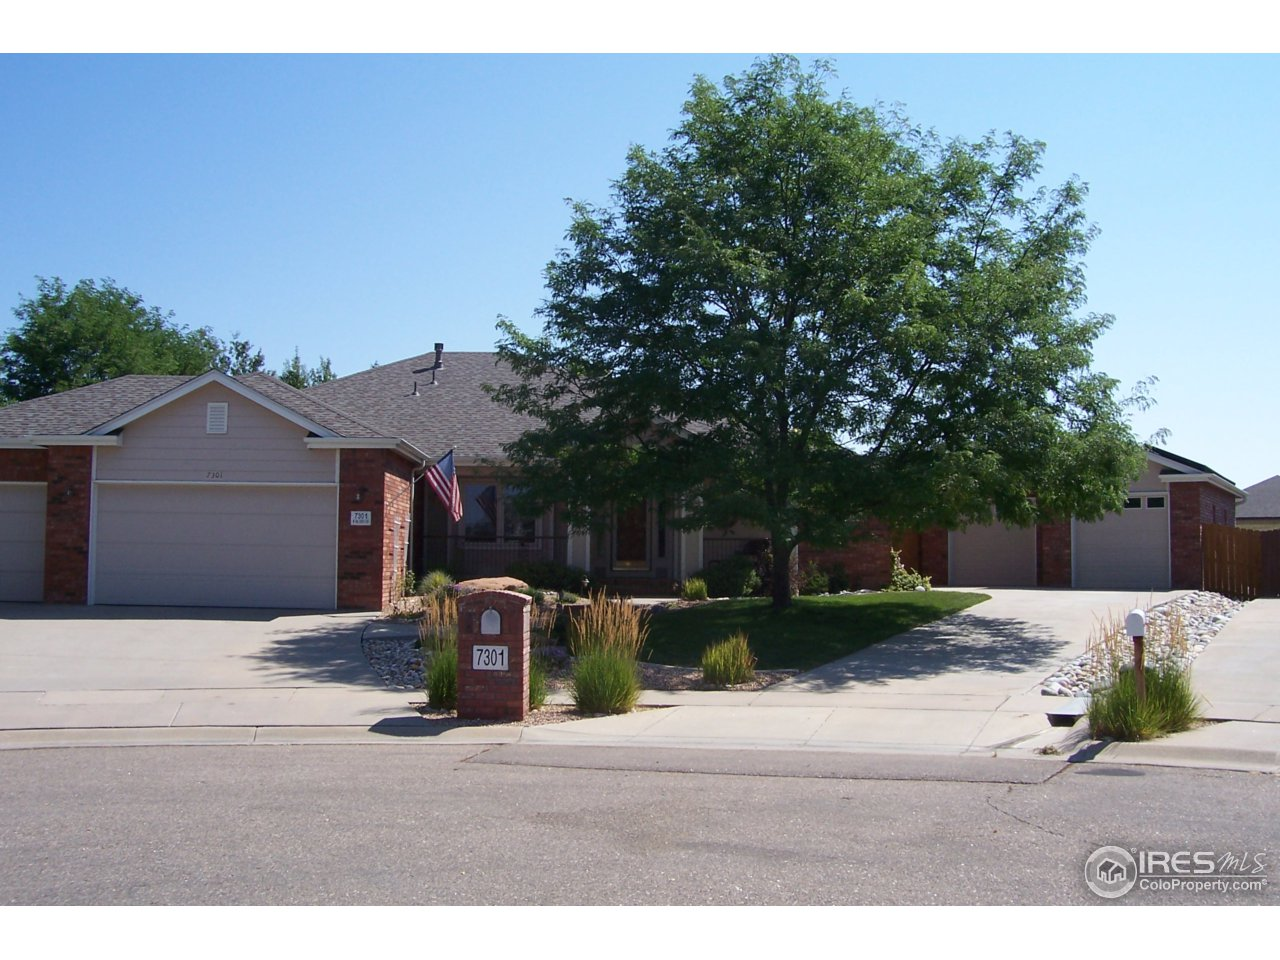 7301 18th St Rd, Greeley CO 80634